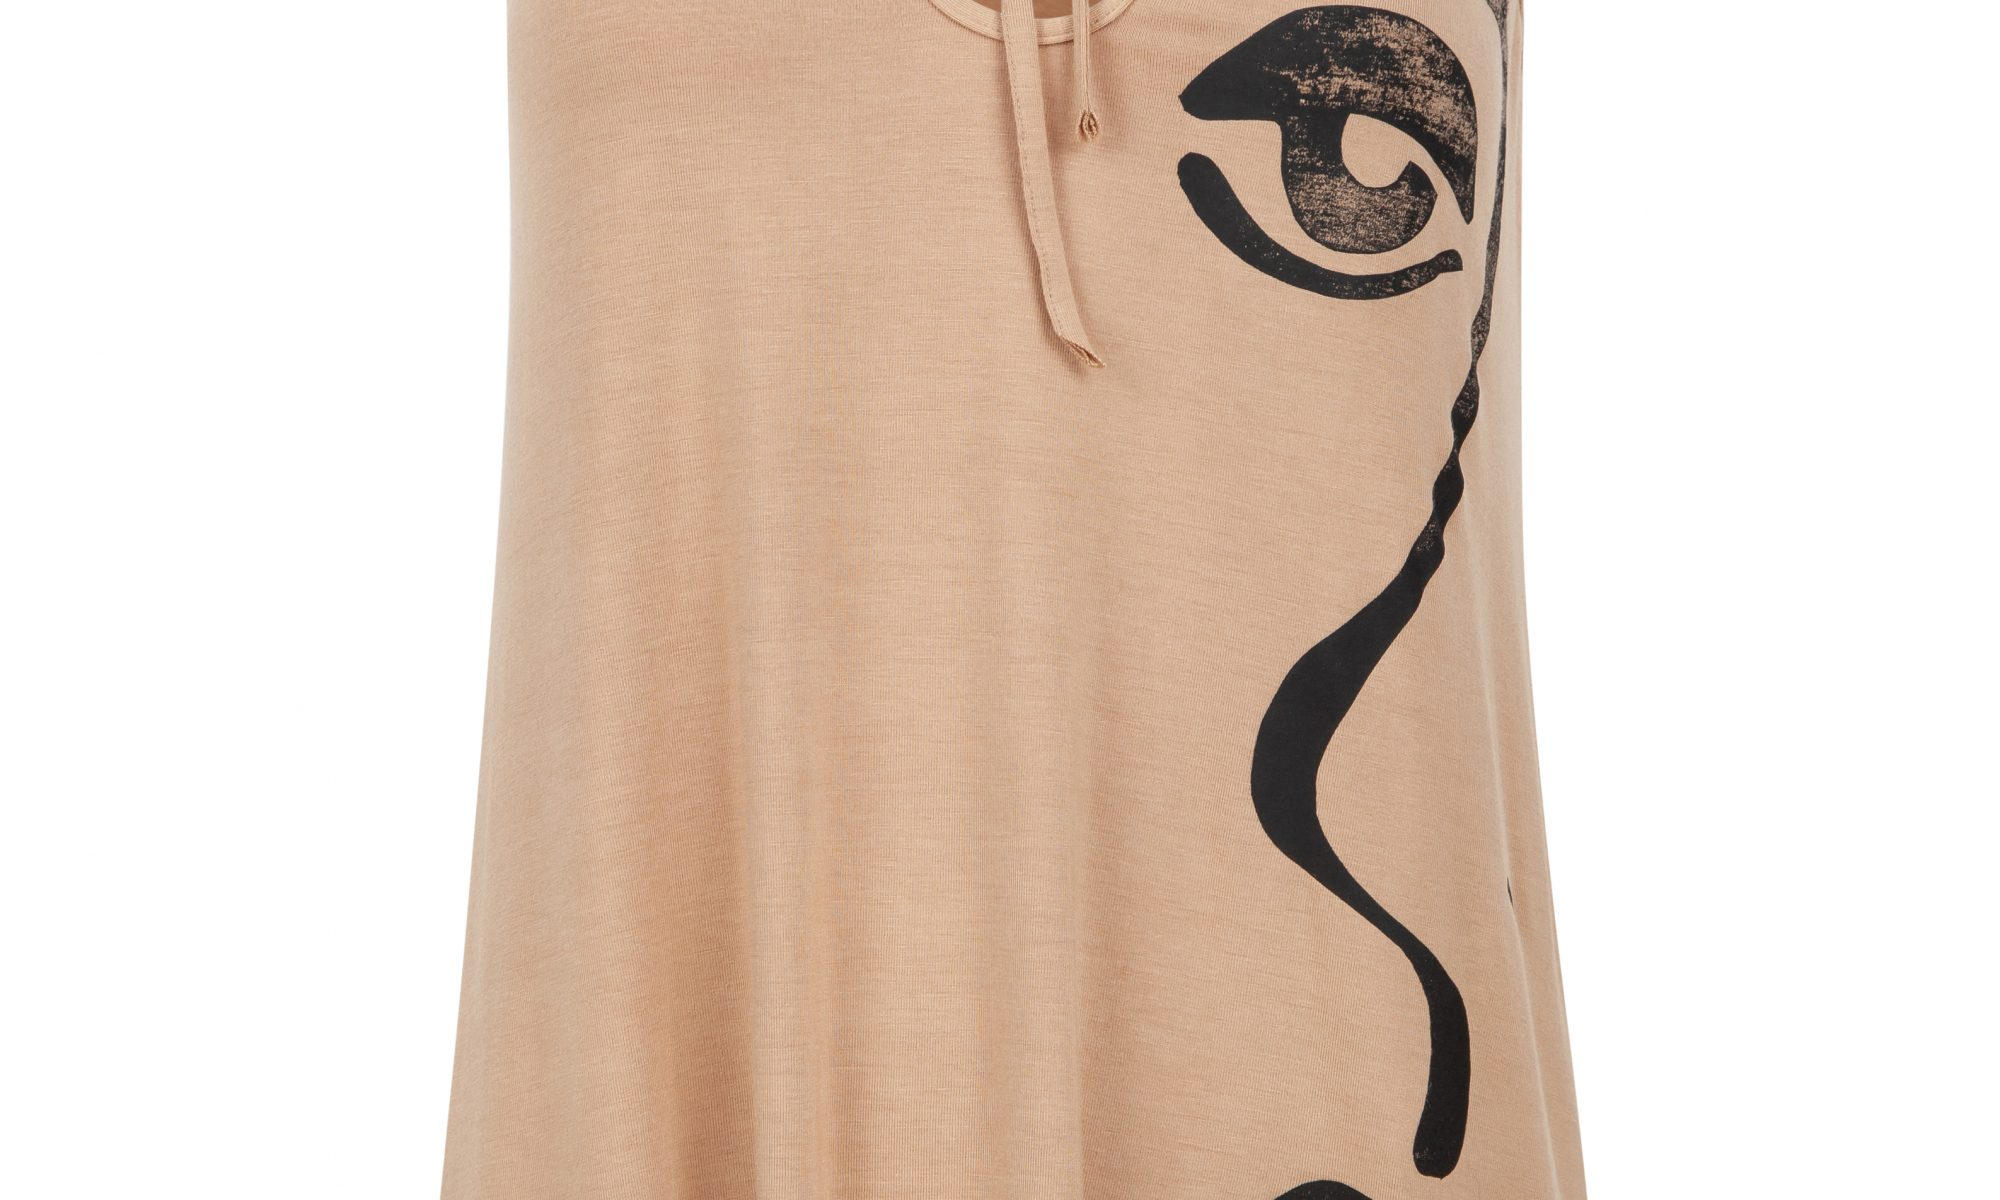 Flared keyhole top in sand beige